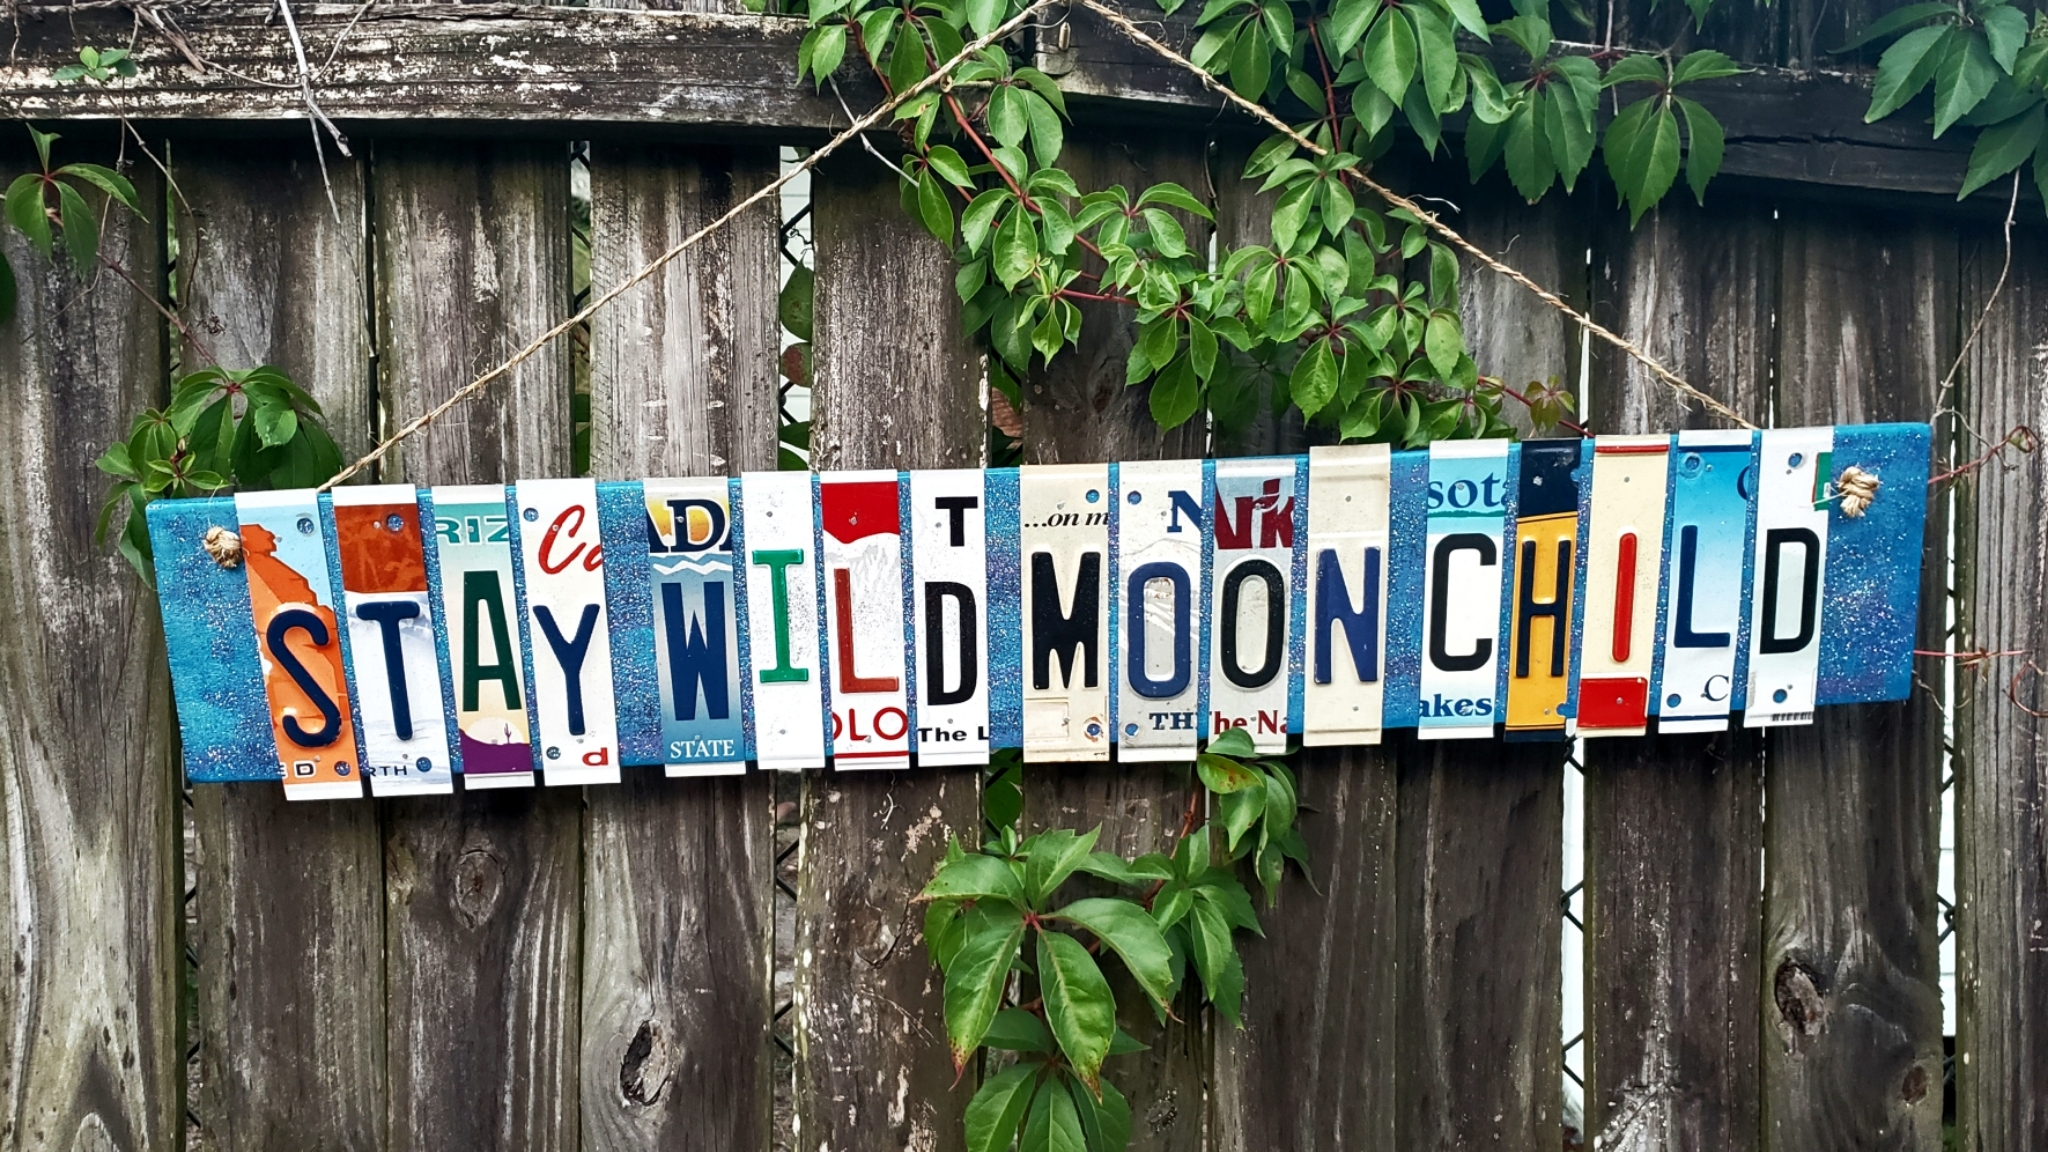 Stay Wild Moon Child License Plate Sign 00136